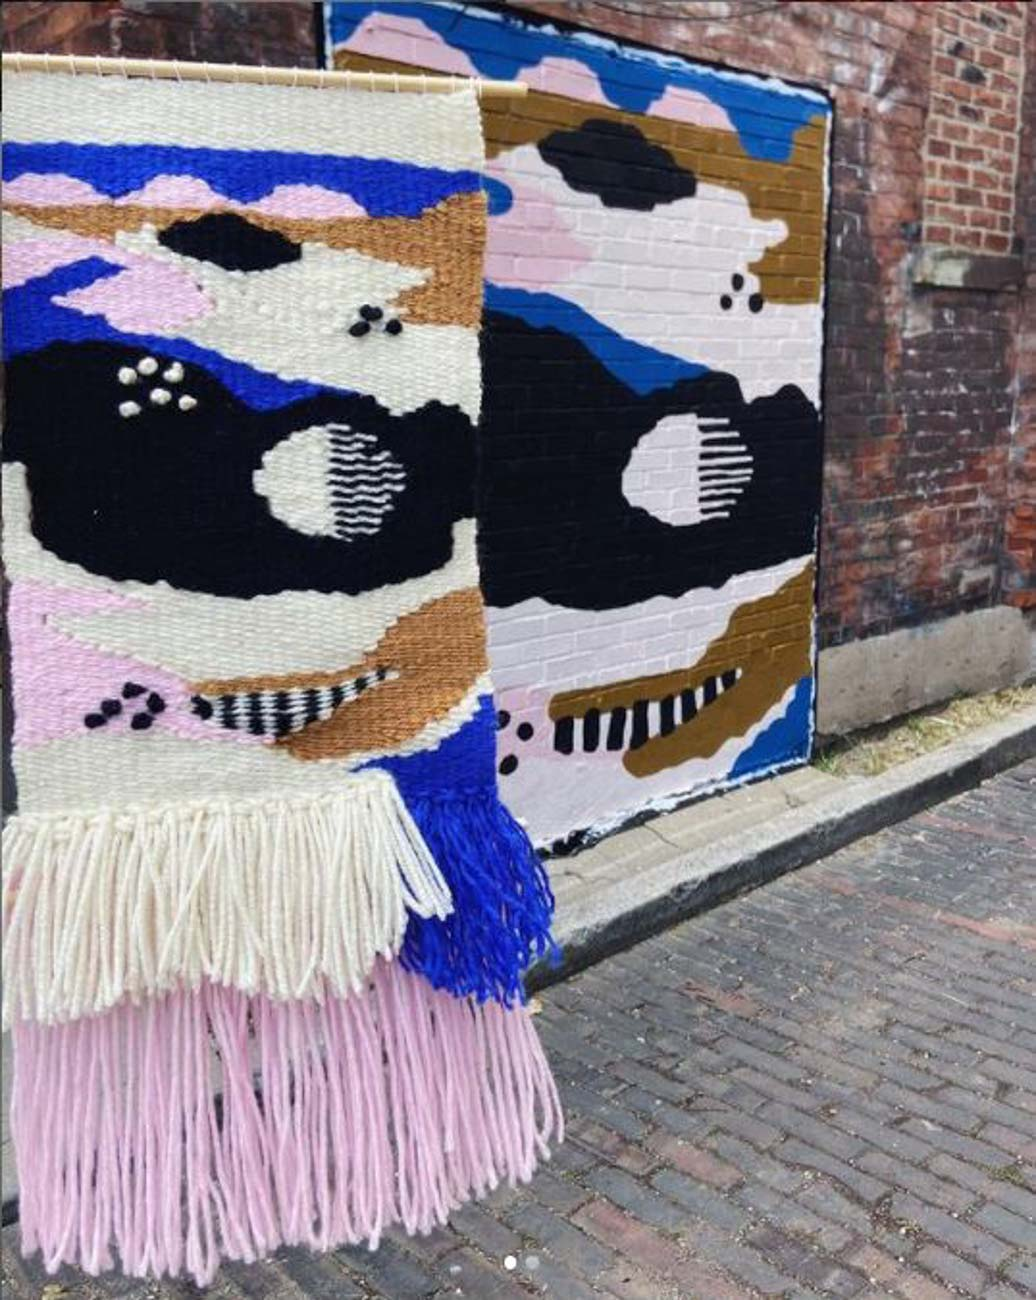 Genevieve has worked for ArtWorks, as well, painting a mural at the corner of 4th and Vine Streets. She's also made a fiber art installation as part of their program to brighten up local storefronts. / Image courtesy of Genevieve Lavalle of BlackOlive Art // Published: 12.26.